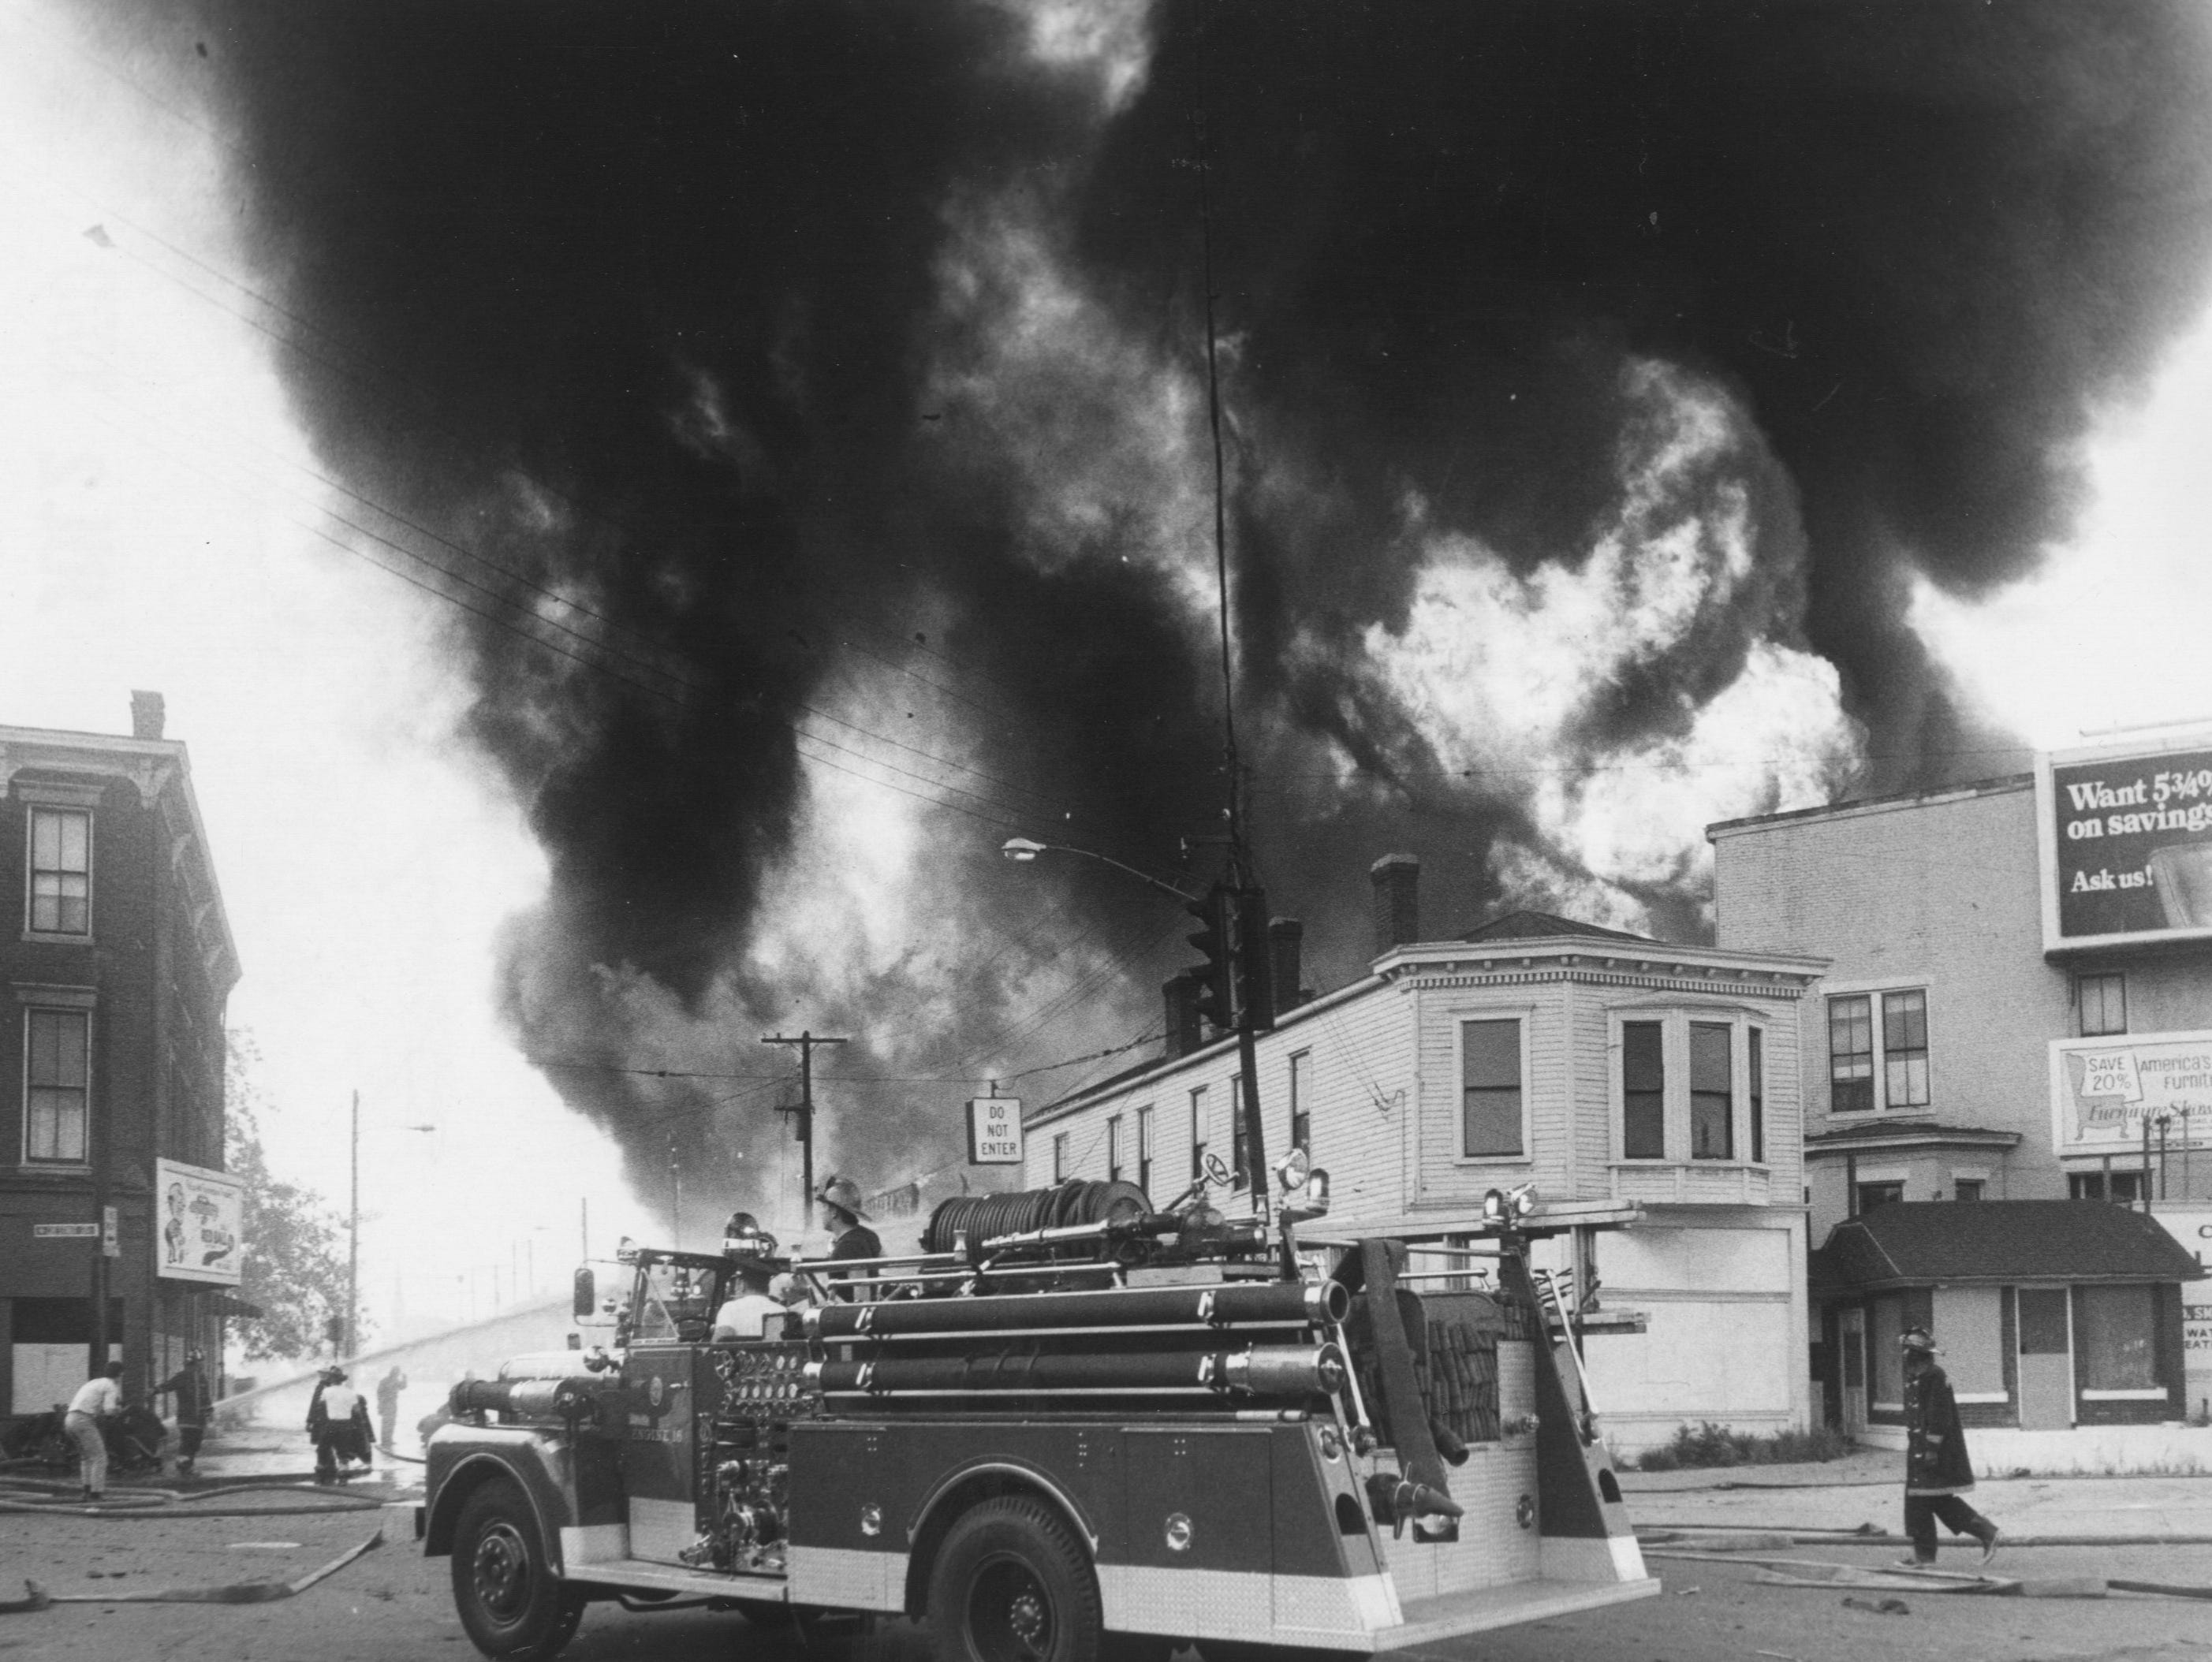 A four-alarm fire on Baxter Ave. between Jefferson and Liberty. 